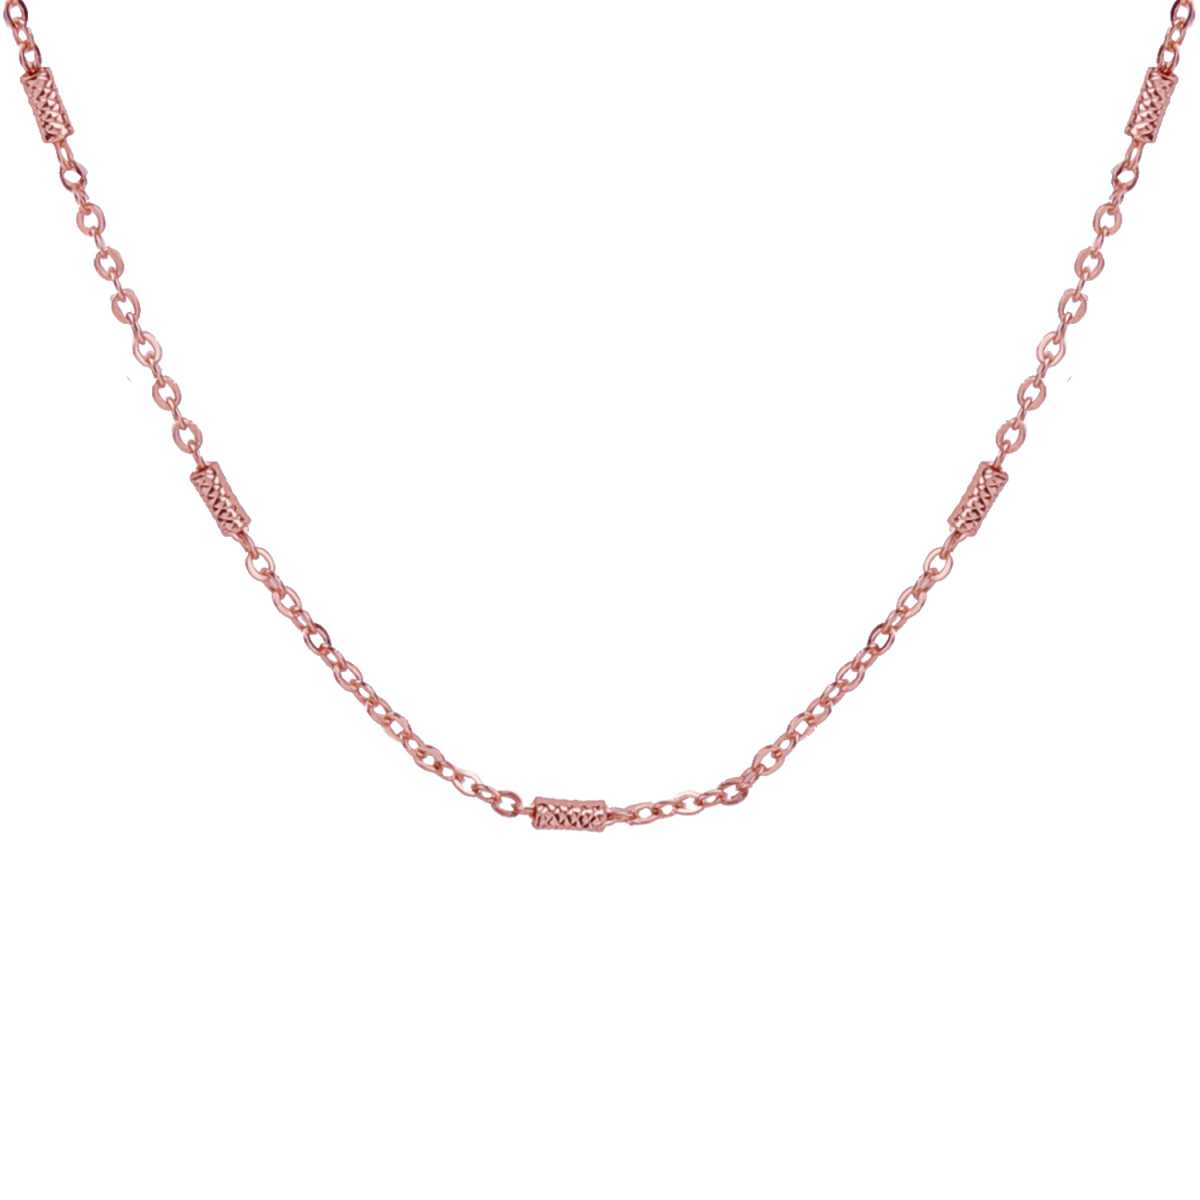 Silver Shine Eye-Catching Gold Plated Simple Design Chain 18 Inch Daily Wear Jewellry For Girls And Women